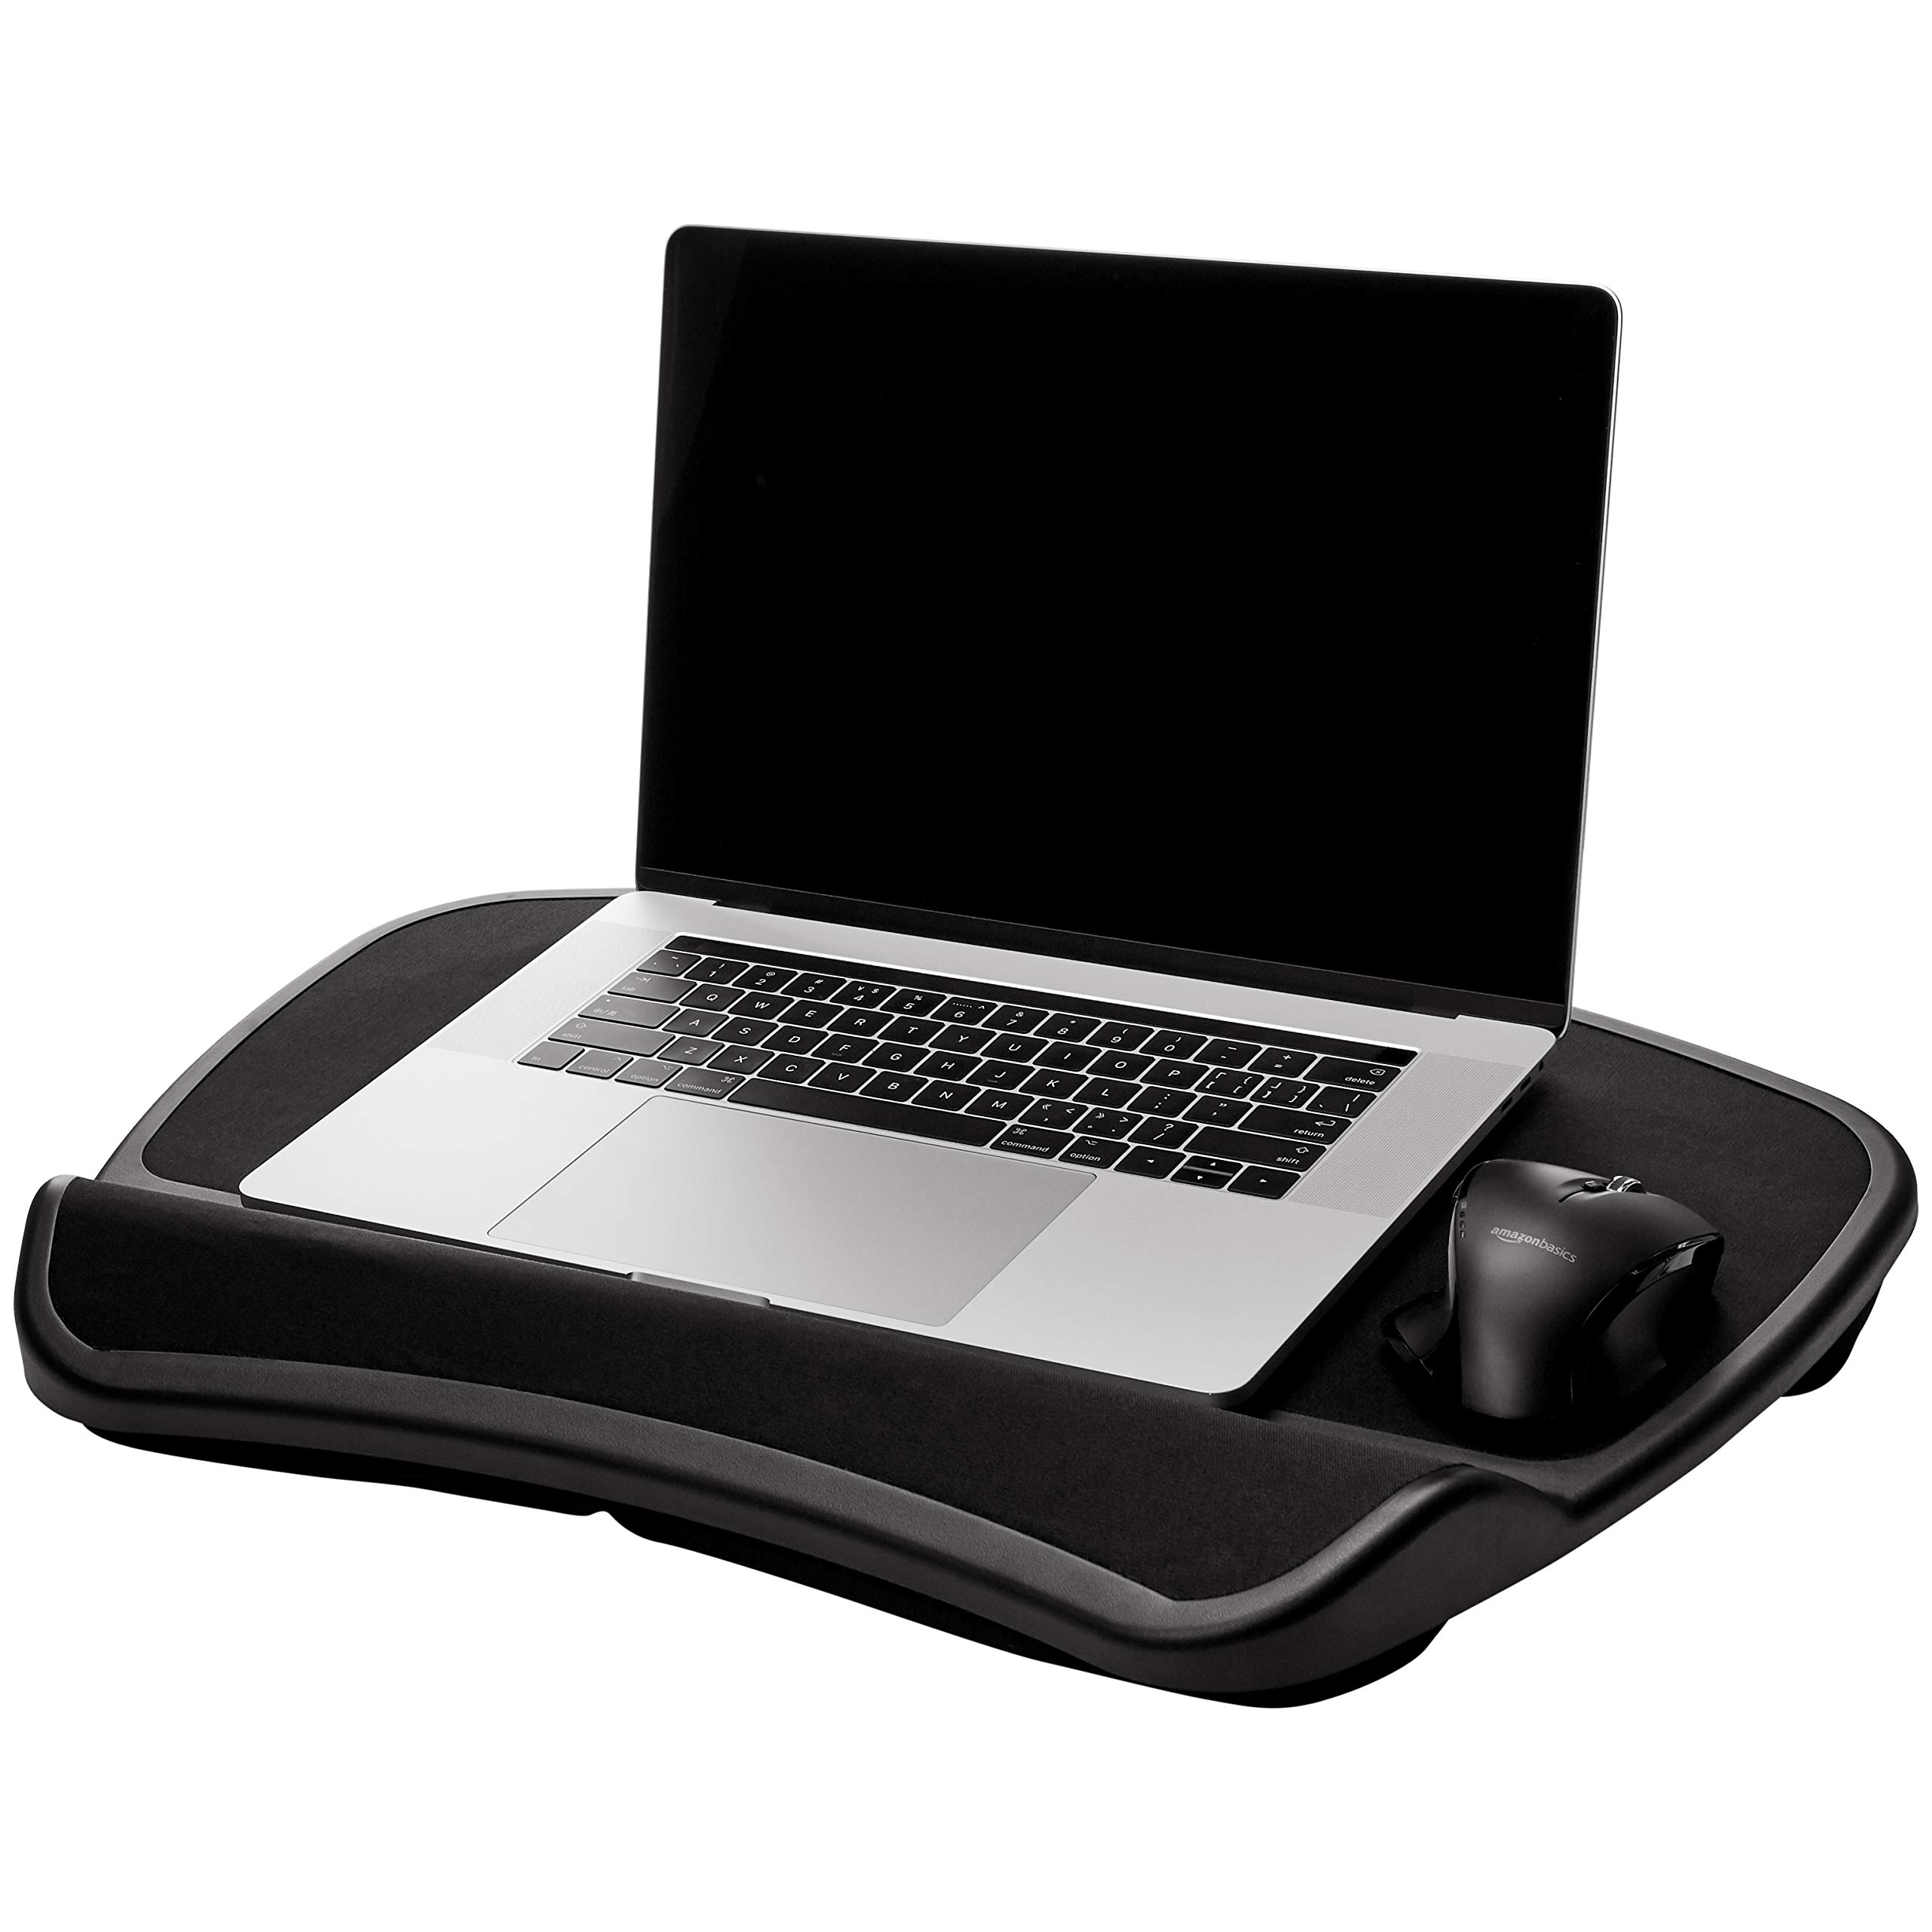 AmazonBasics XL Laptop Lap Desk Tray with Cushion, Fits up to 17.3 Inch Laptops by AmazonBasics (Image #1)